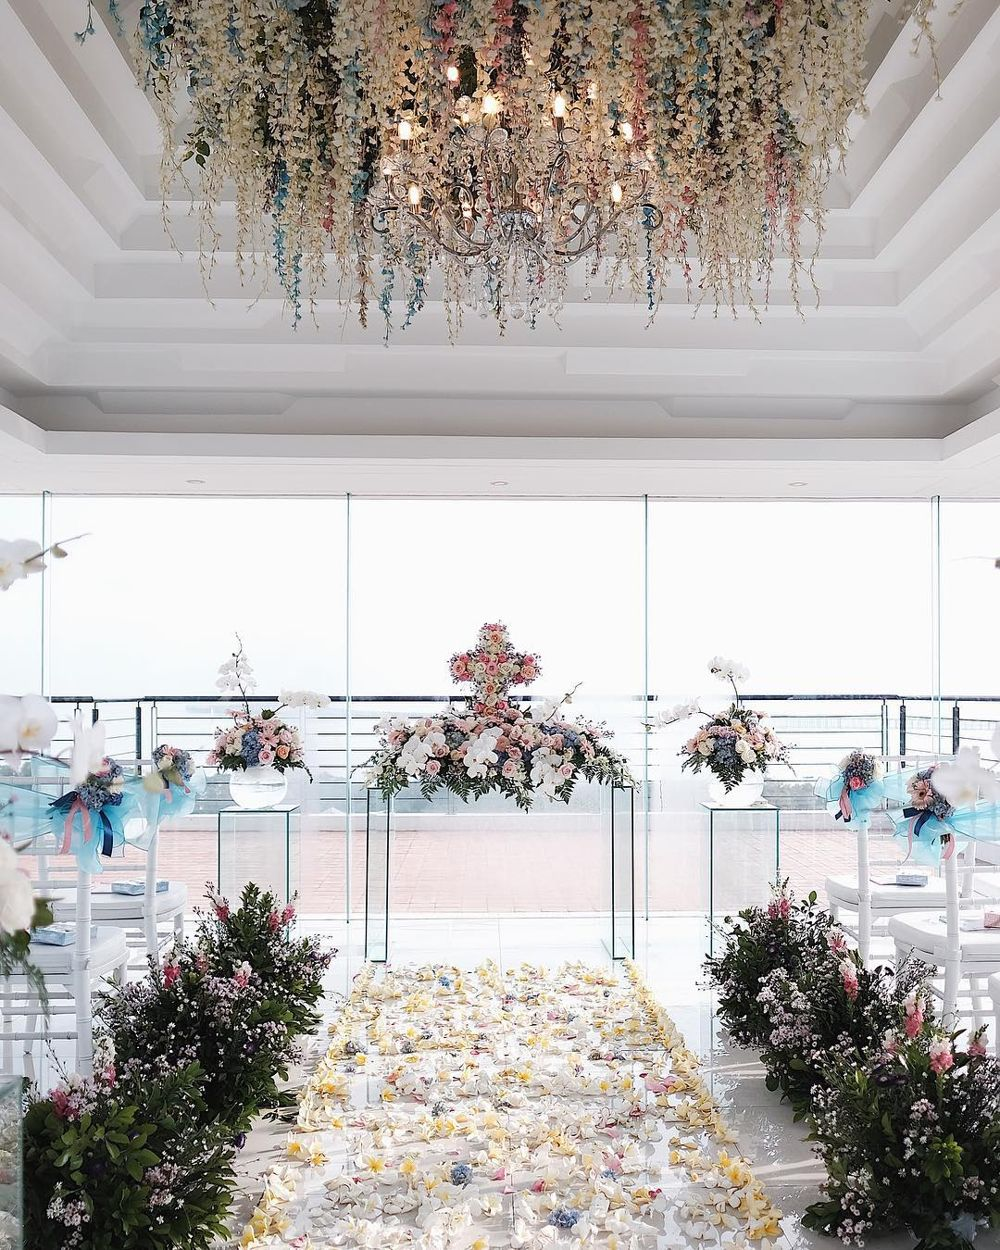 Inside Oracle Chapel with decor